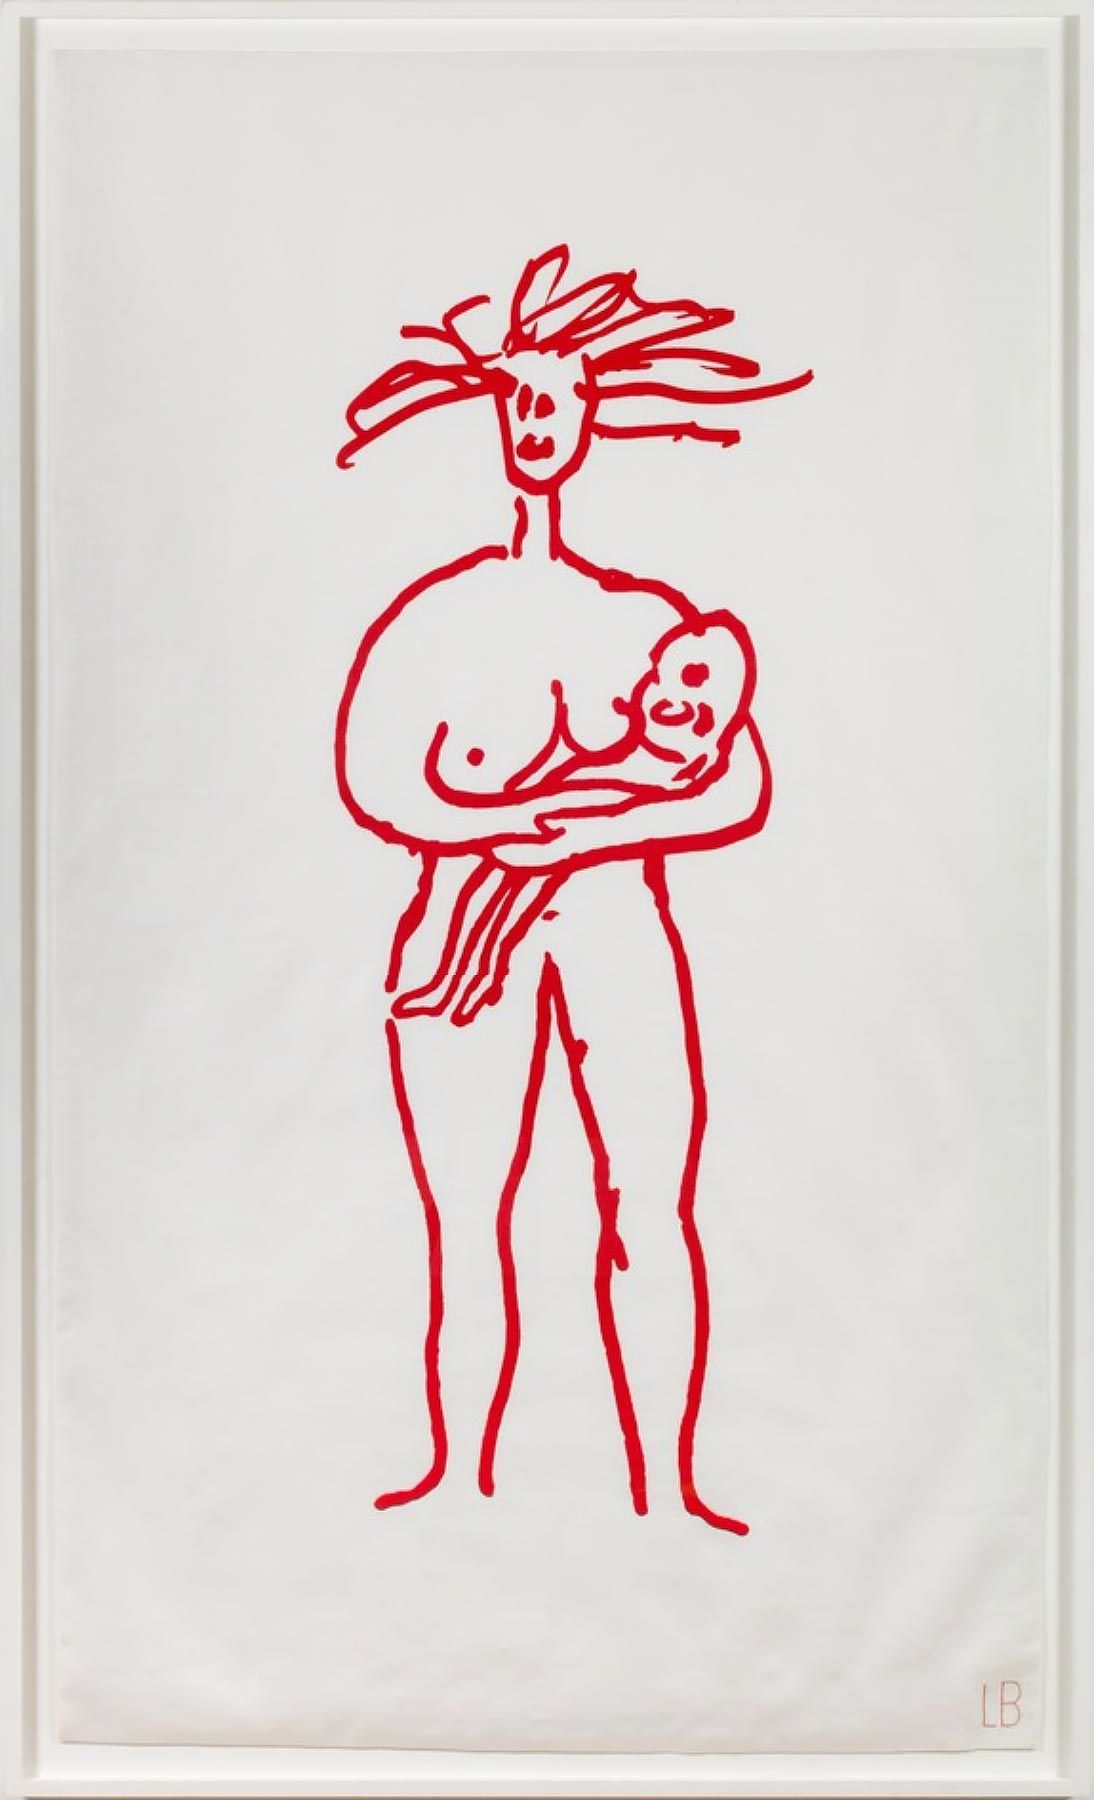 LOUISE BOURGEOIS, Mother and Child, 2007